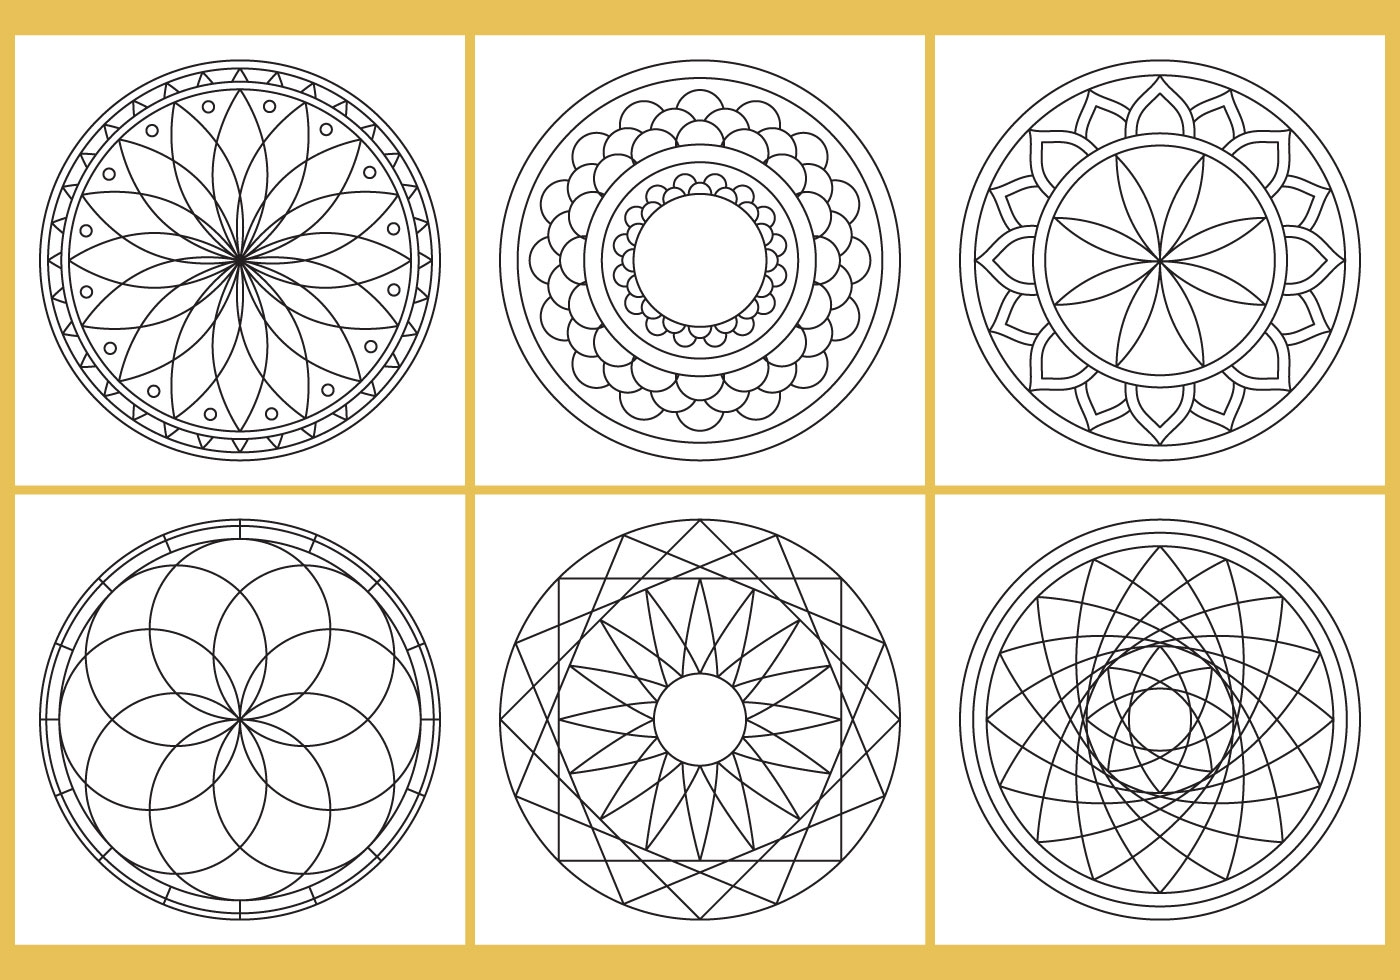 floral coloring pages - coloring mandala page vectors